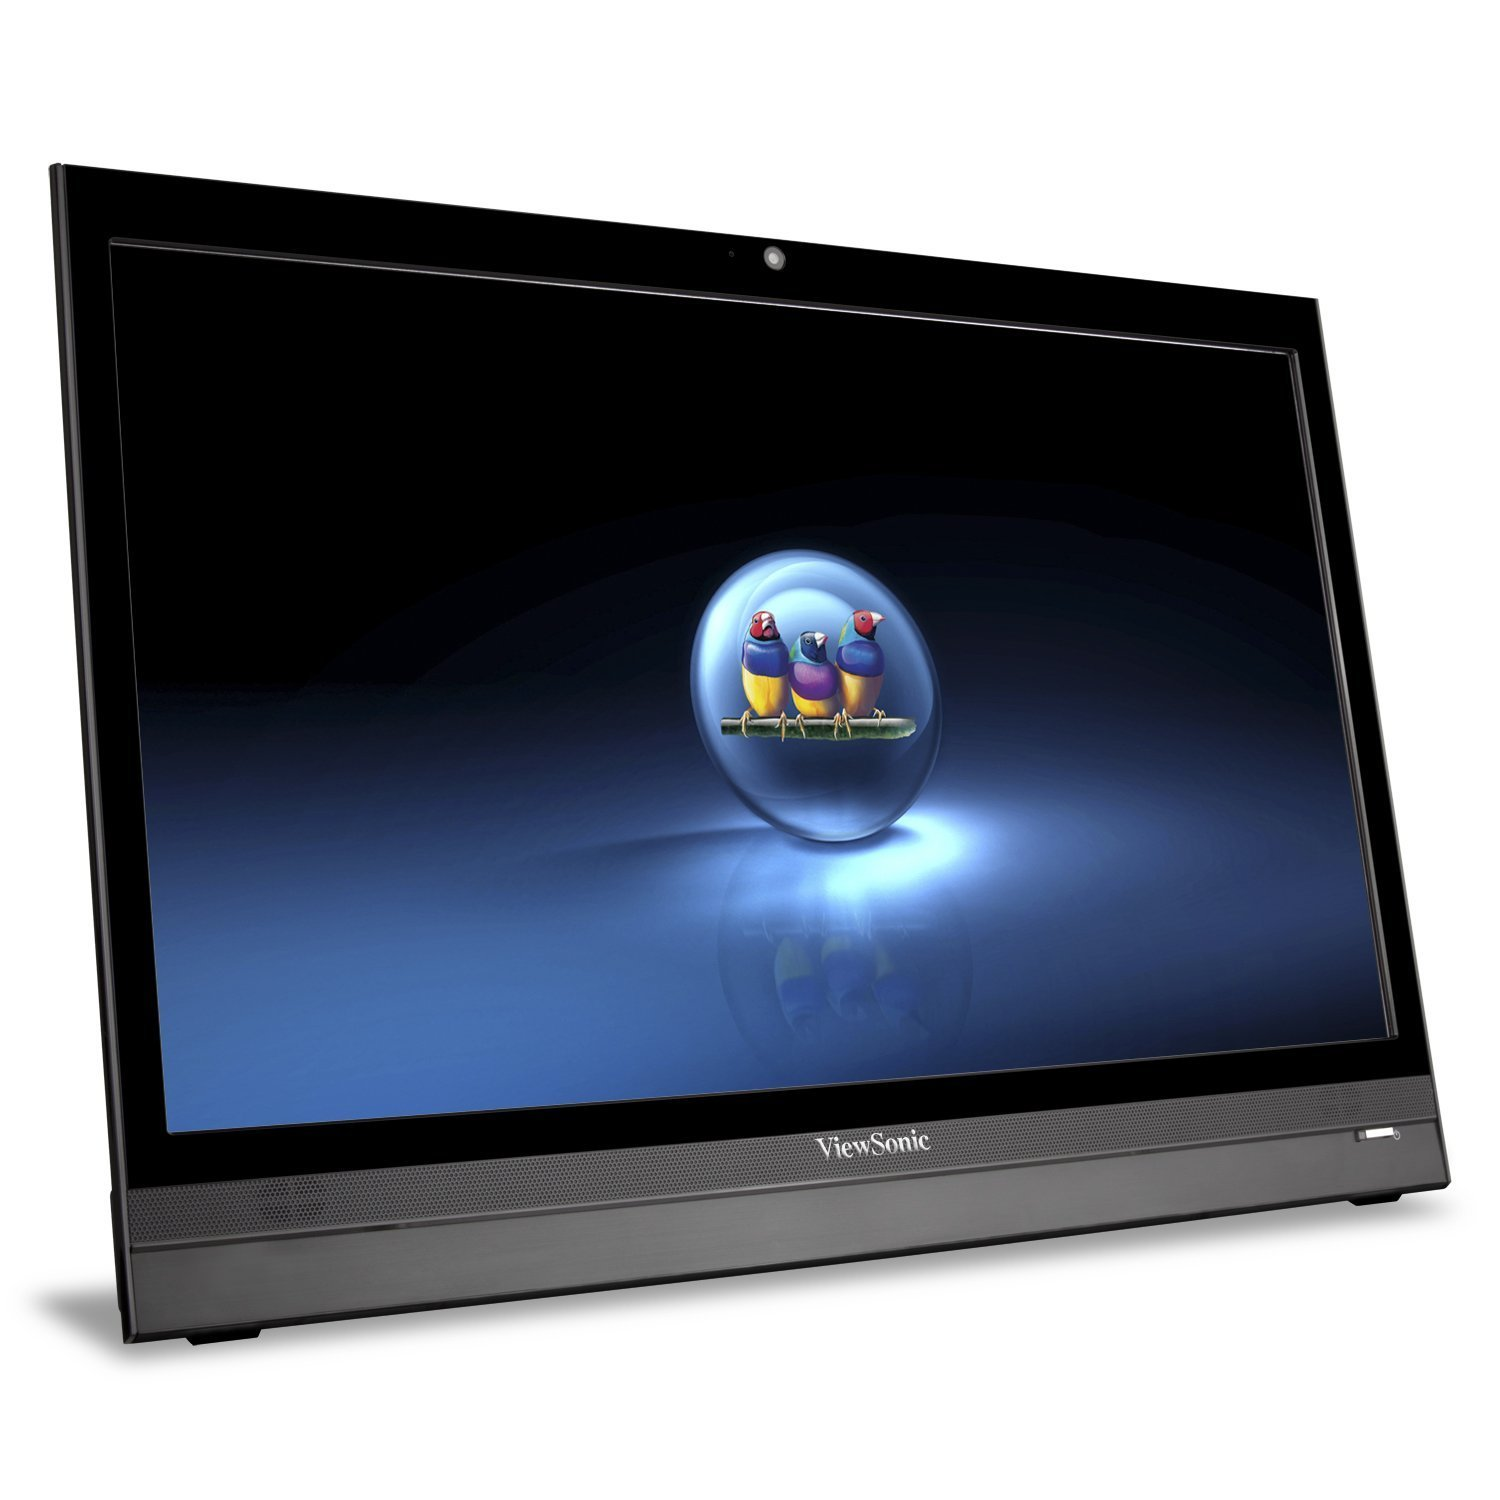 Acer Iconia W500 Sonix Keyboard Drivers for PC